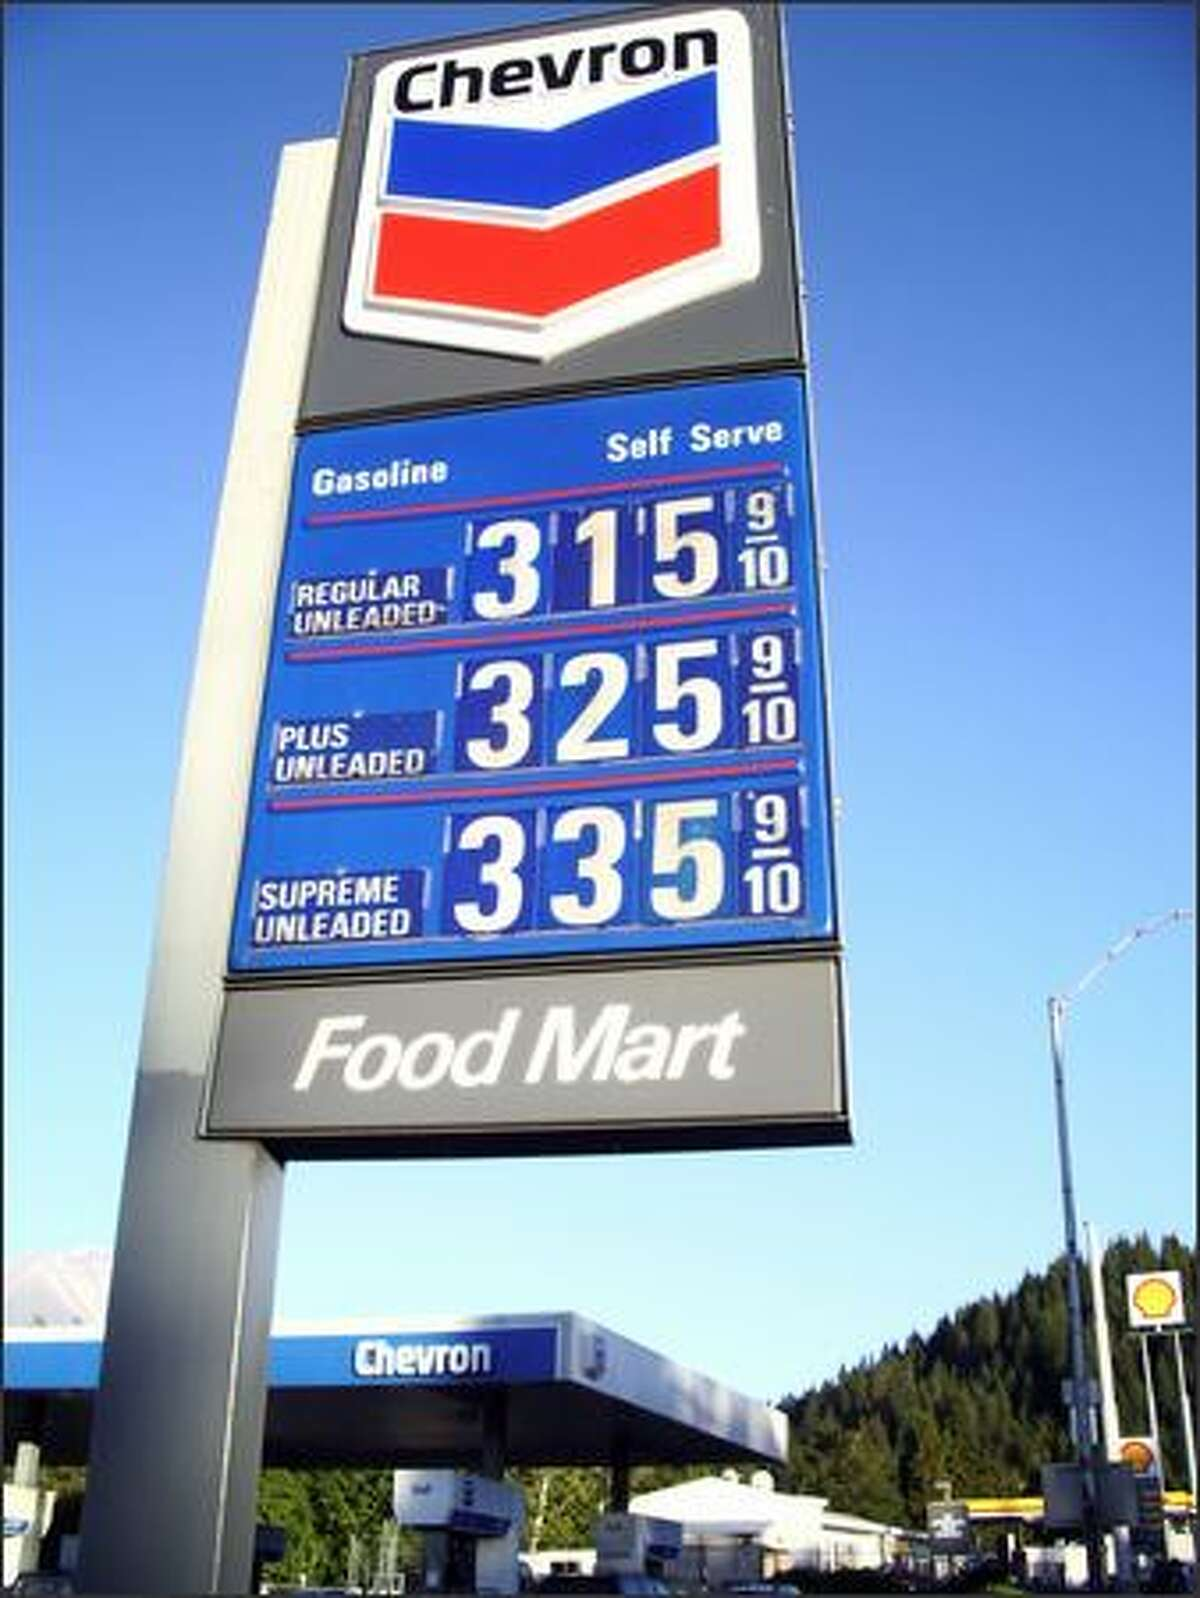 The price of gas in Weed, Calif., on Sept. 19, 2005. Sad thing is that in a few months we all will look at this sign and say